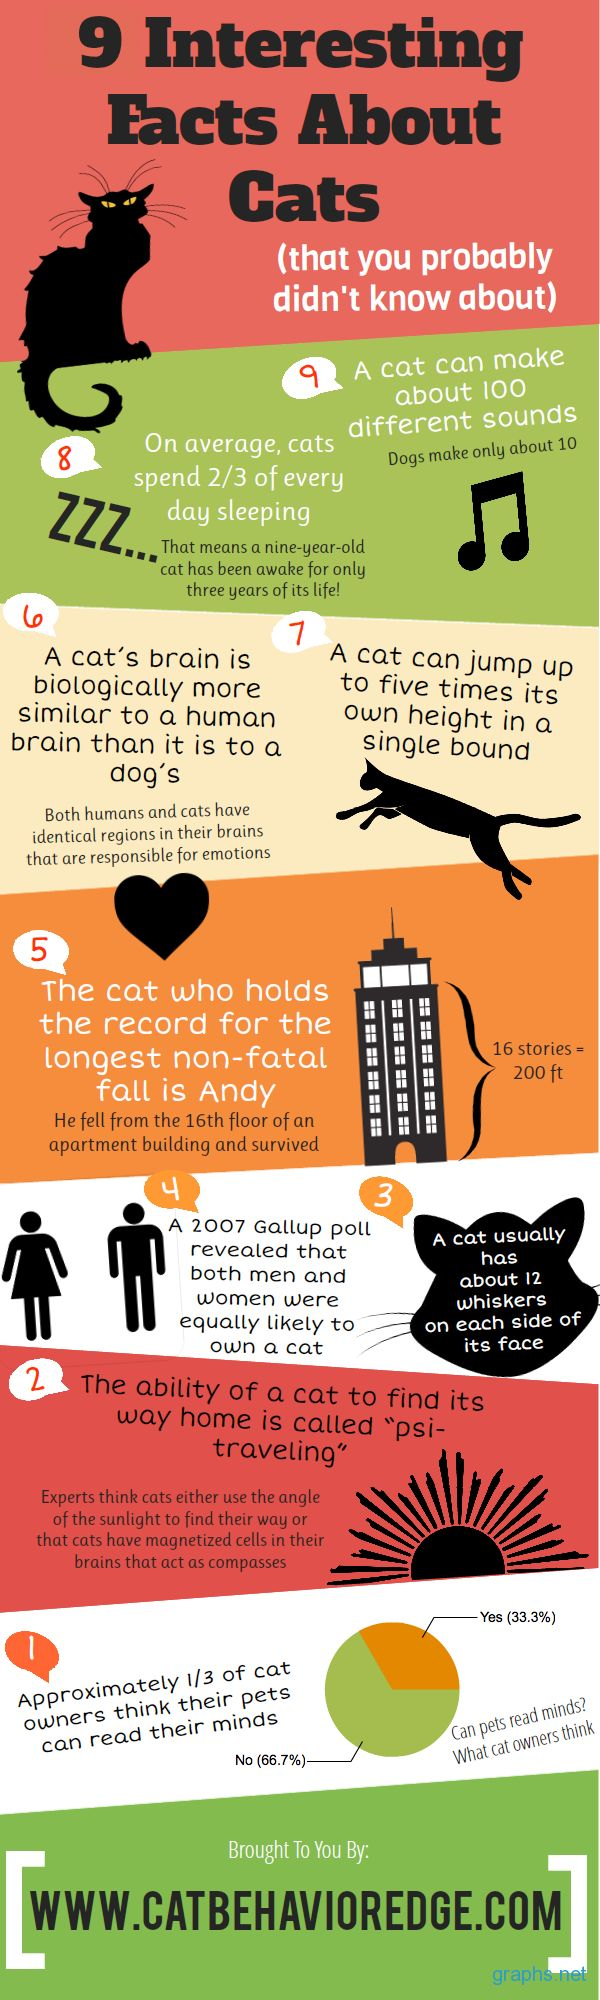 9 Interesting Facts About Cats - that you probably didn't know